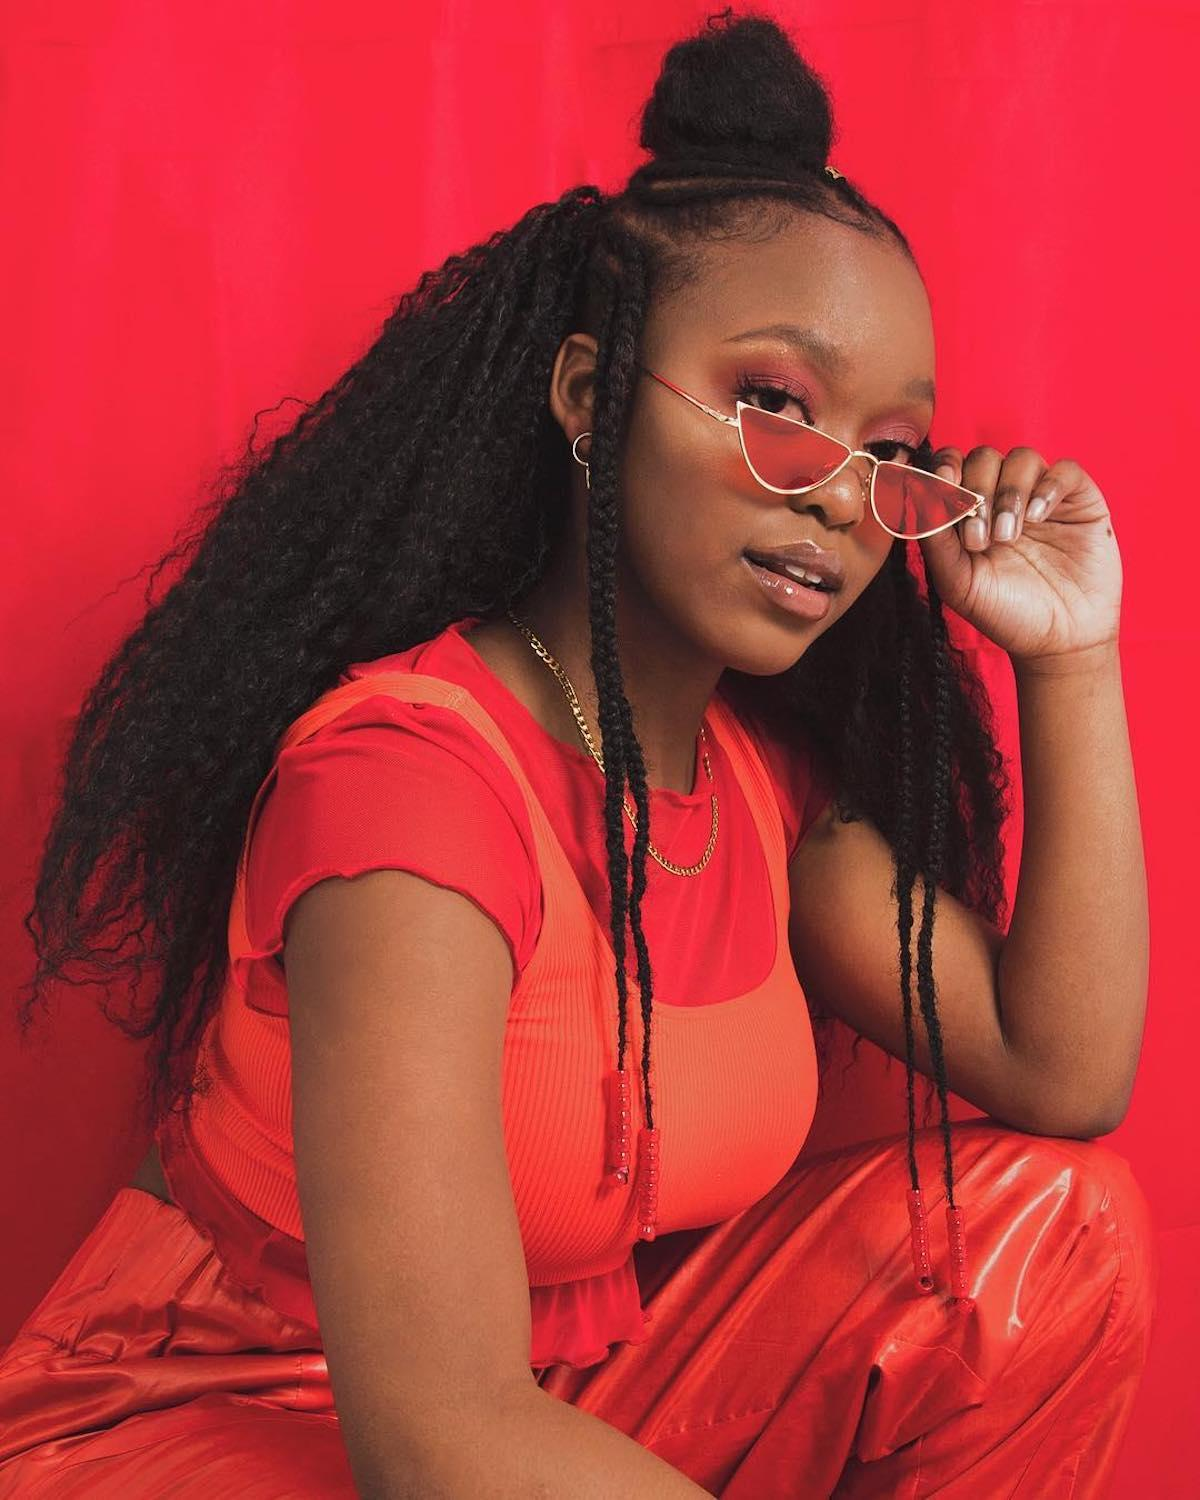 """Birmingham Singer-Songwriter Chido Mya Continues Her Rise With """"Surreal"""""""